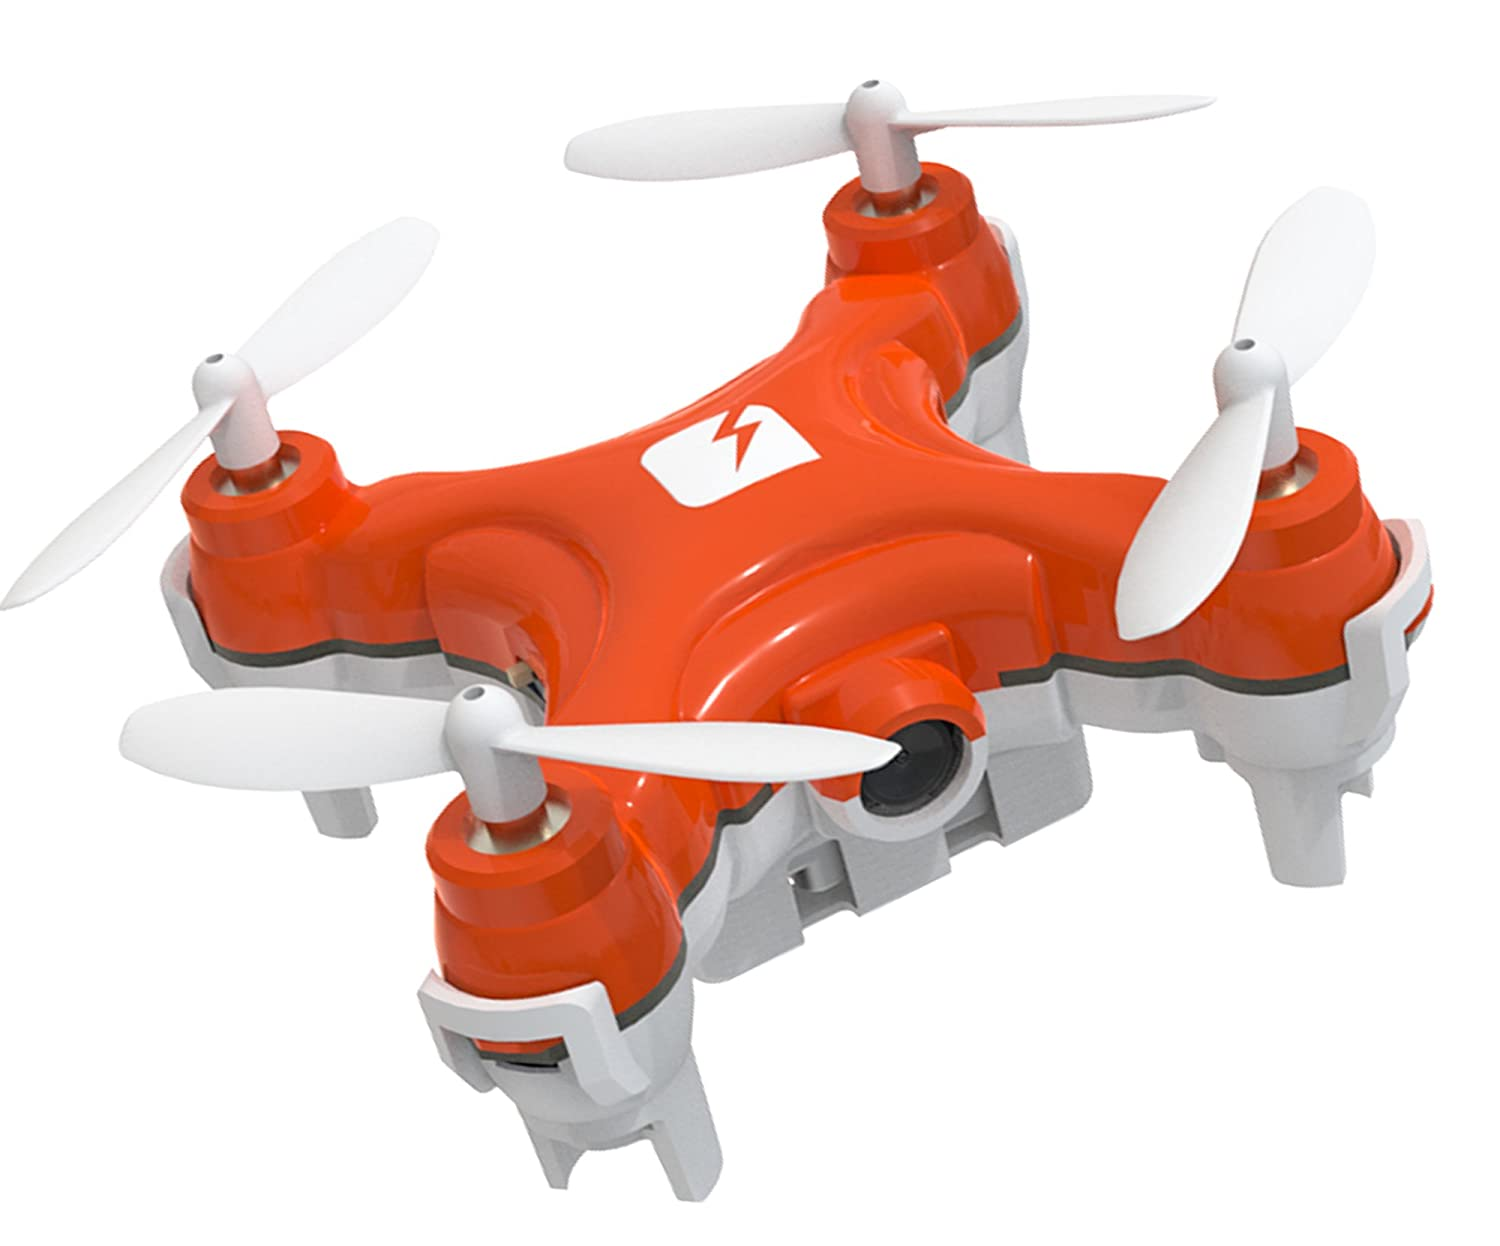 SKEYE Nano Drone with Camera - Remote Controlled - Mini Quadcopter ...